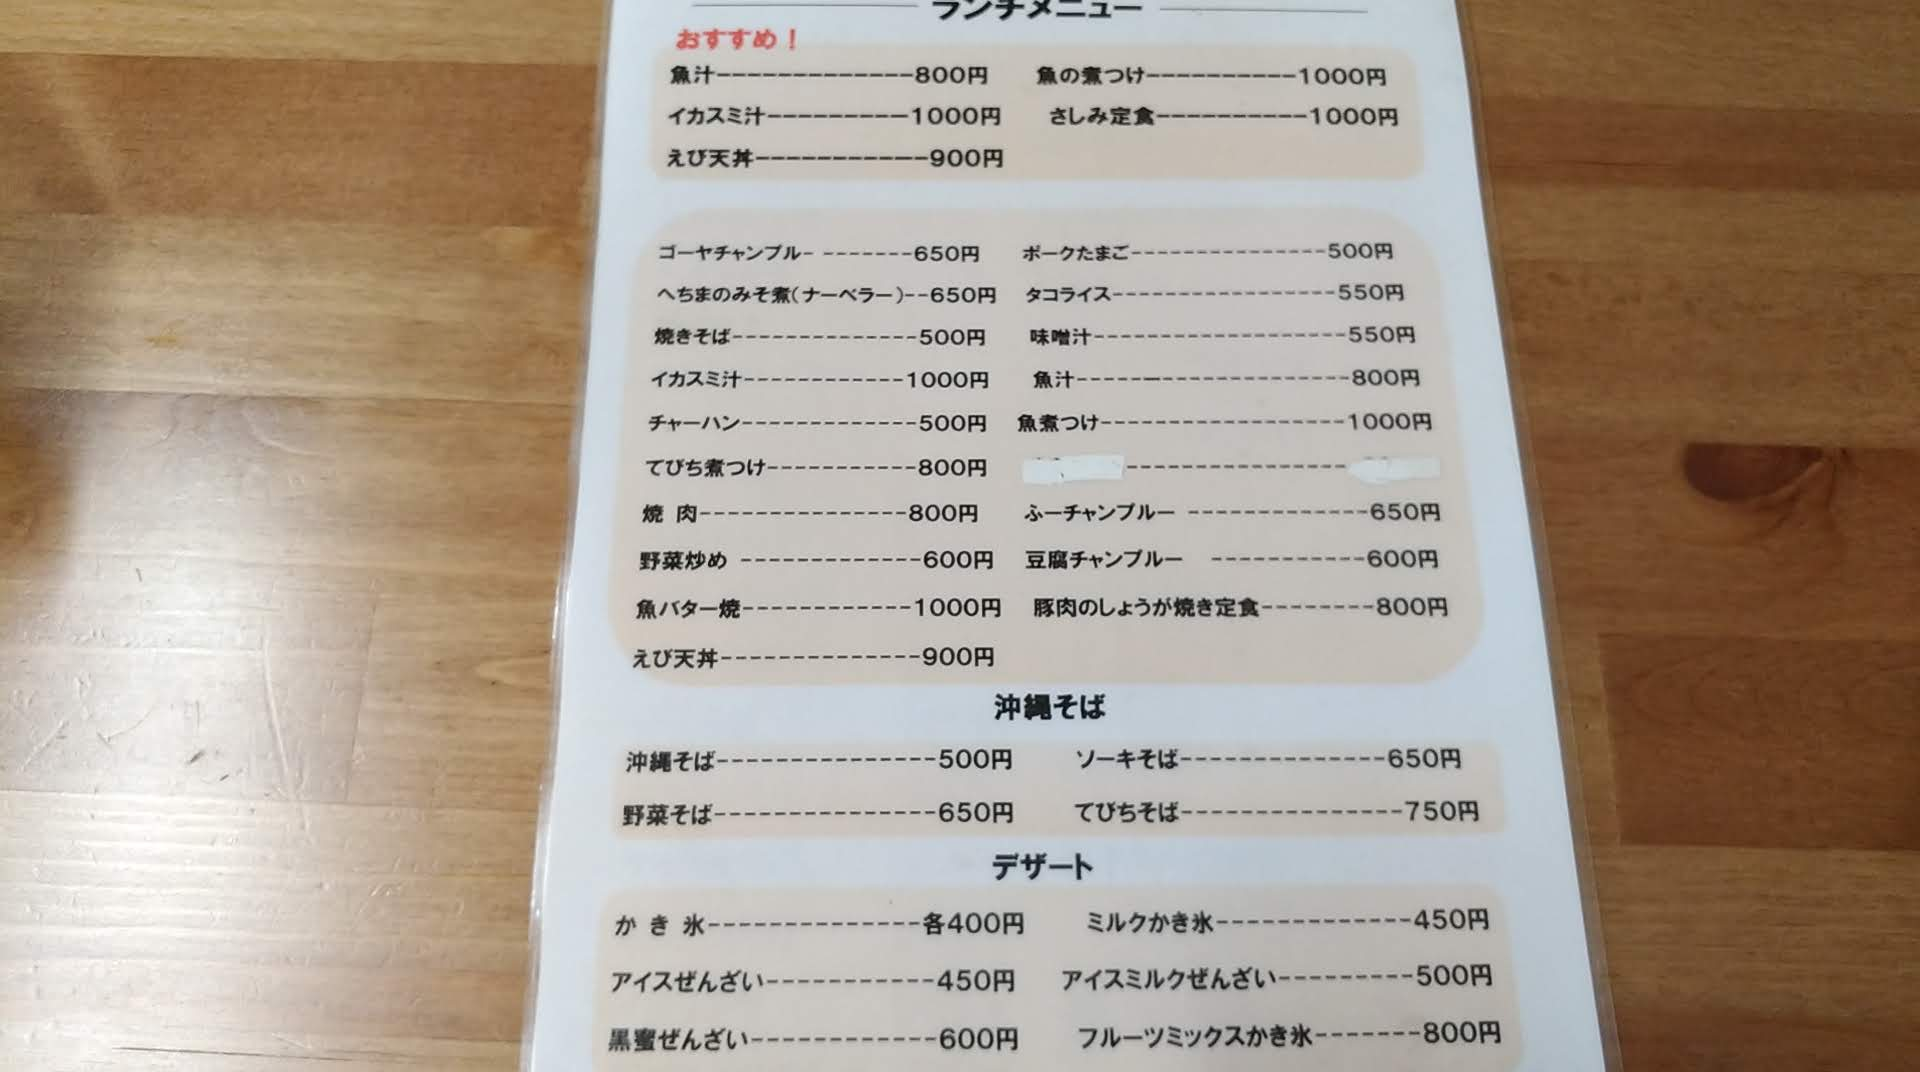 lunch menu of Shintenchi